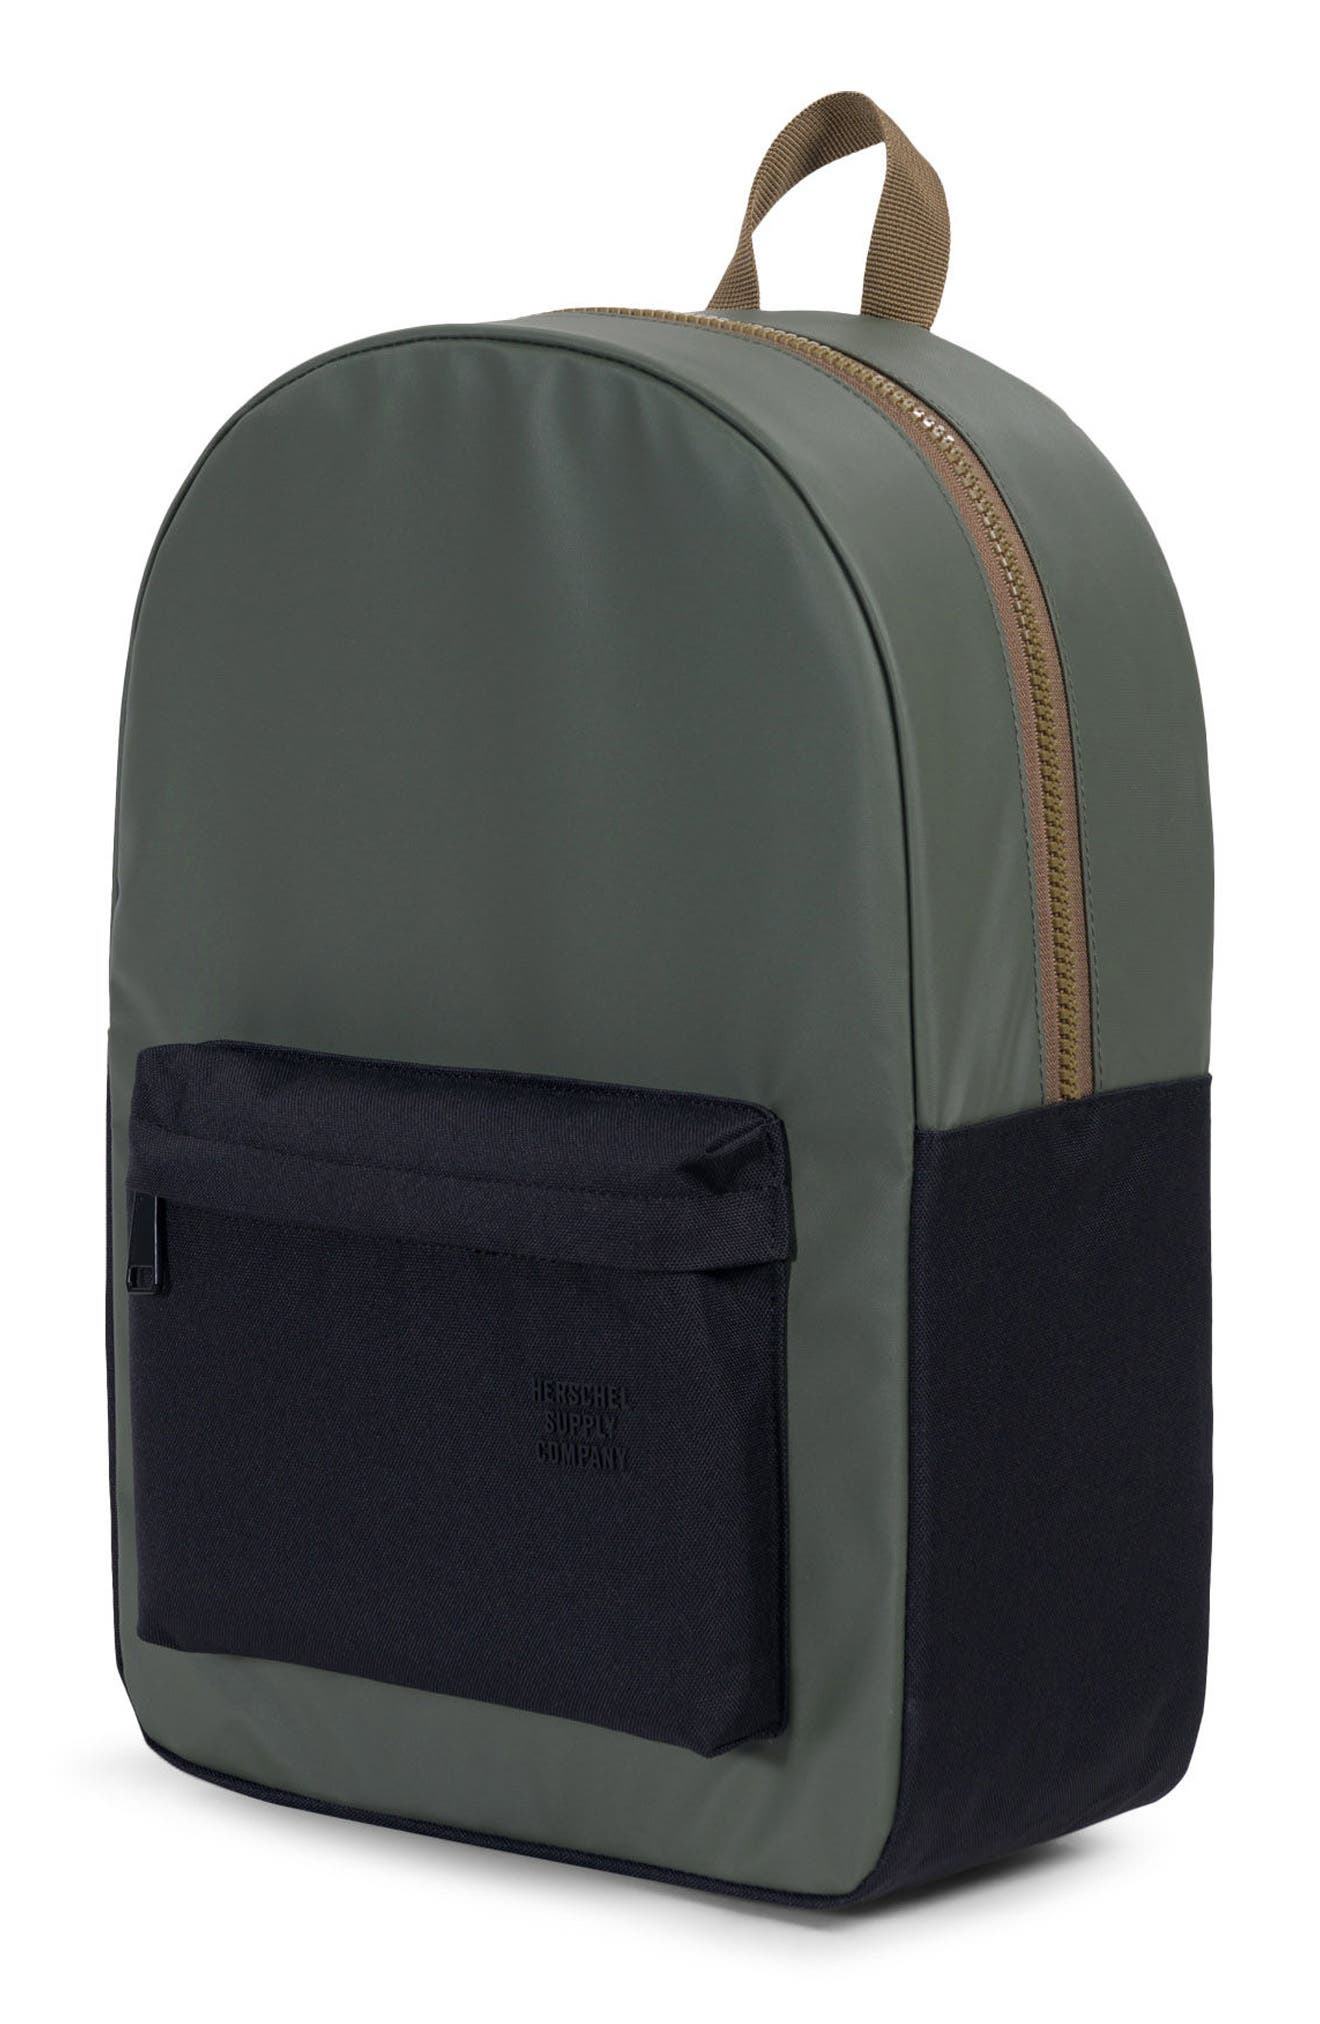 Winlaw Studio Backpack,                             Alternate thumbnail 4, color,                             300